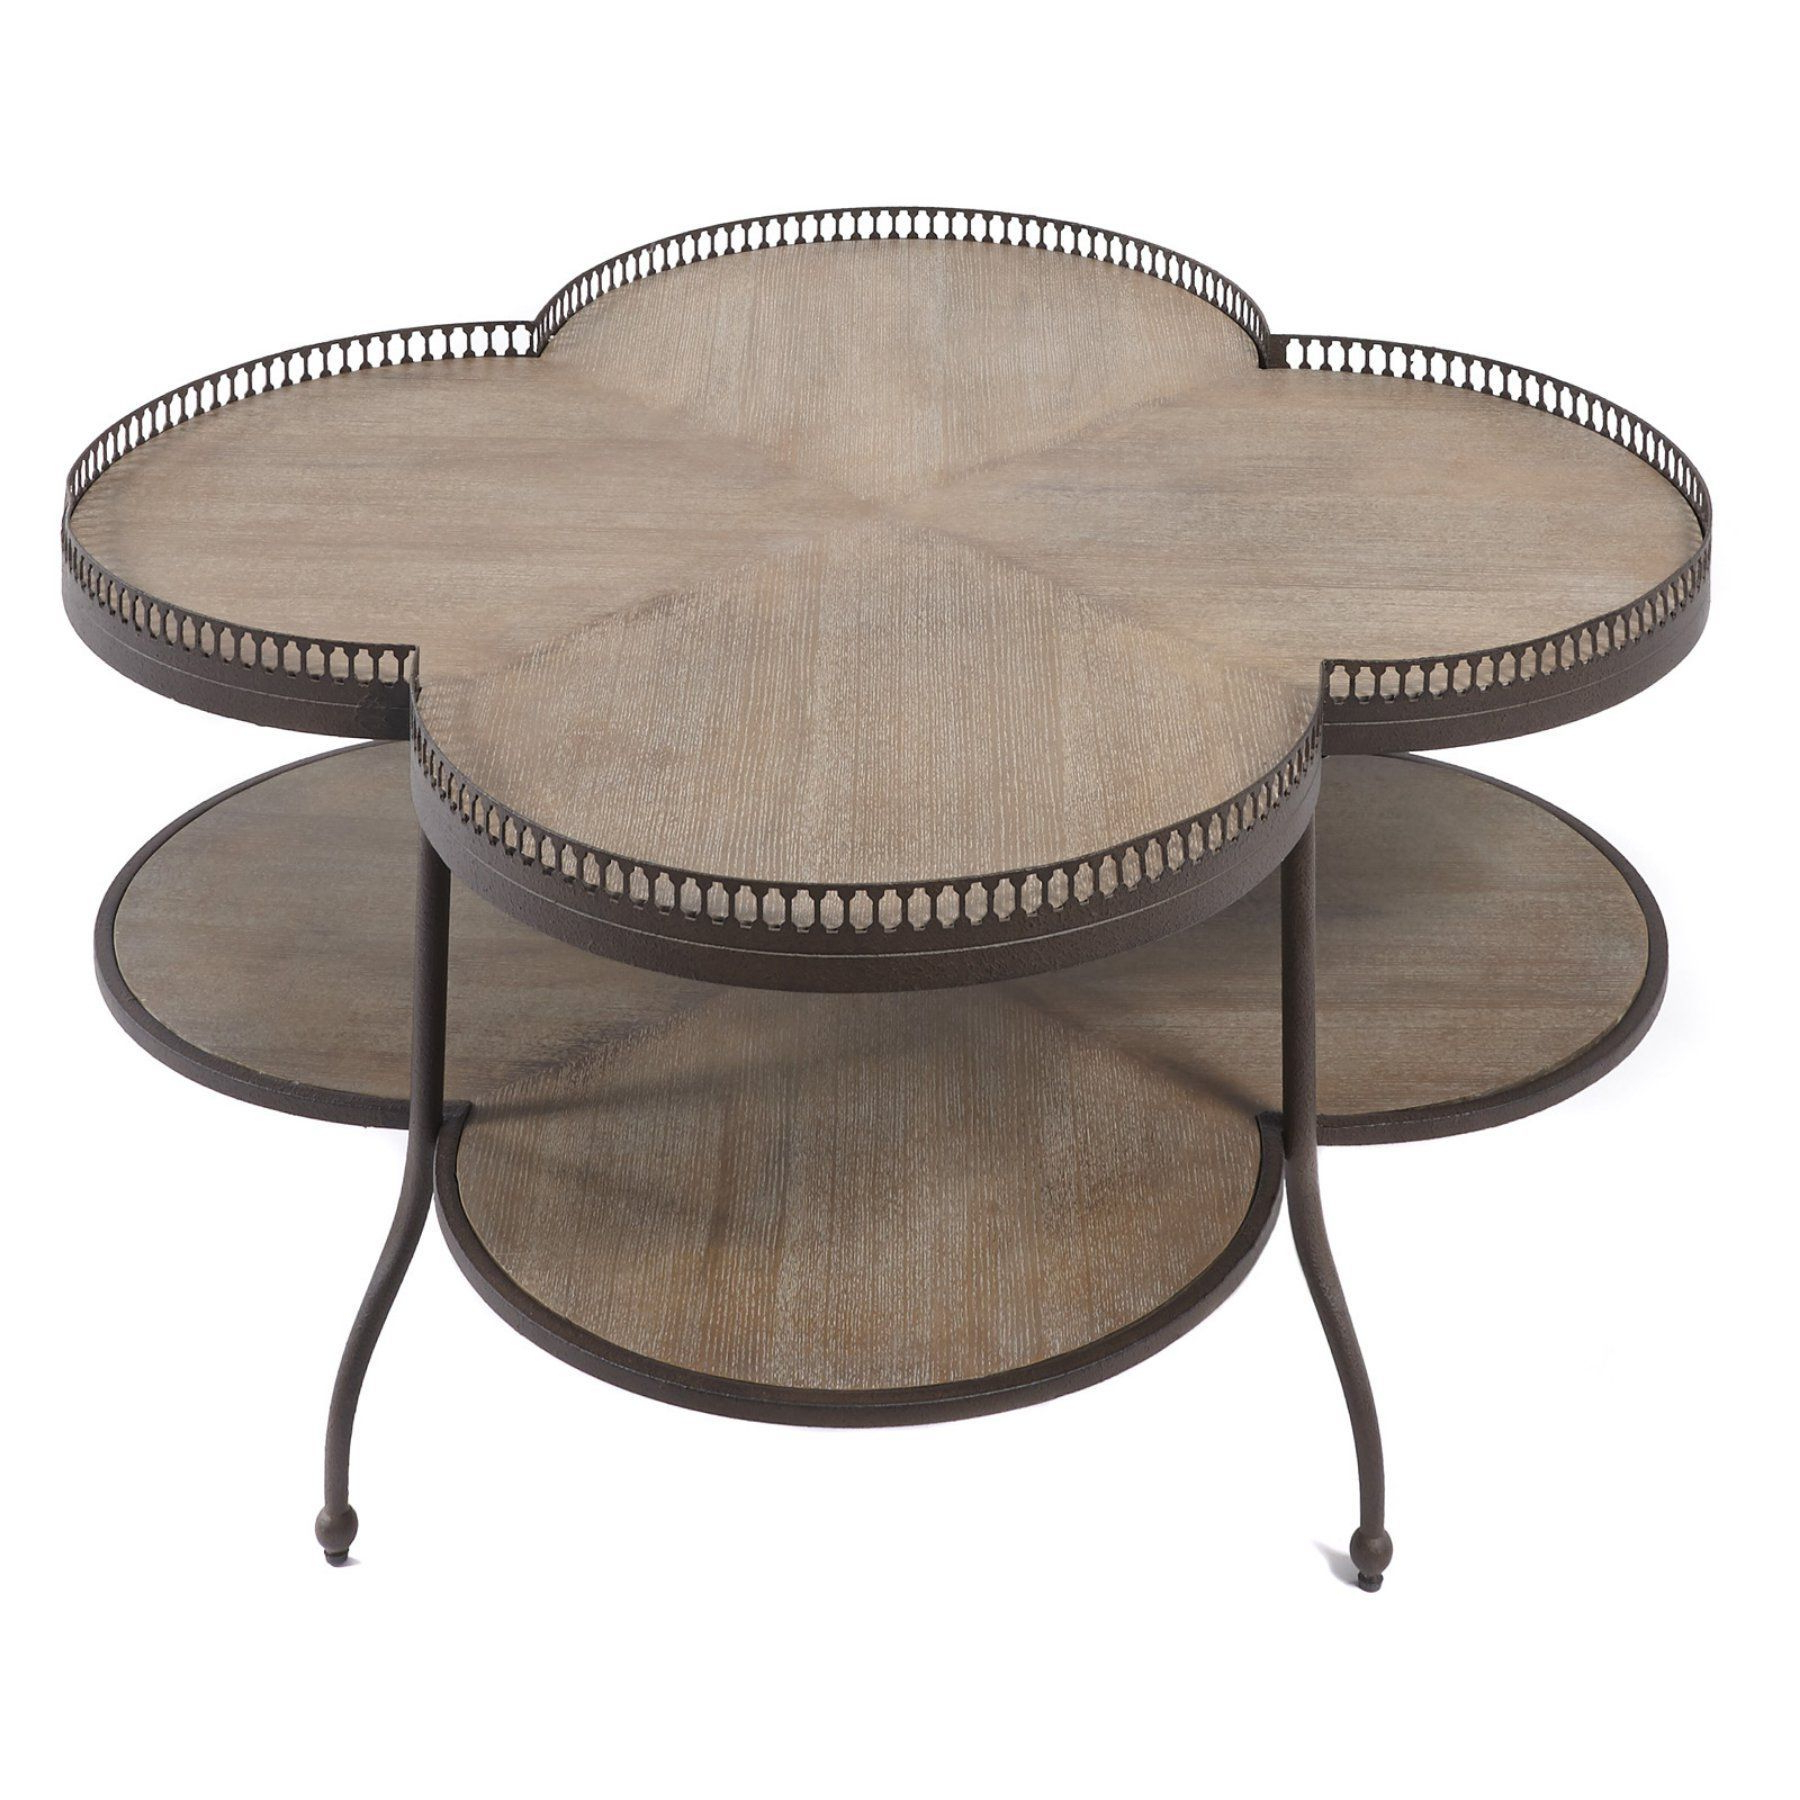 Progressive Furniture Clementine Scalloped Coffee Table – A186 39 For Preferred Cuff Hammered Gold Coffee Tables (Gallery 10 of 20)